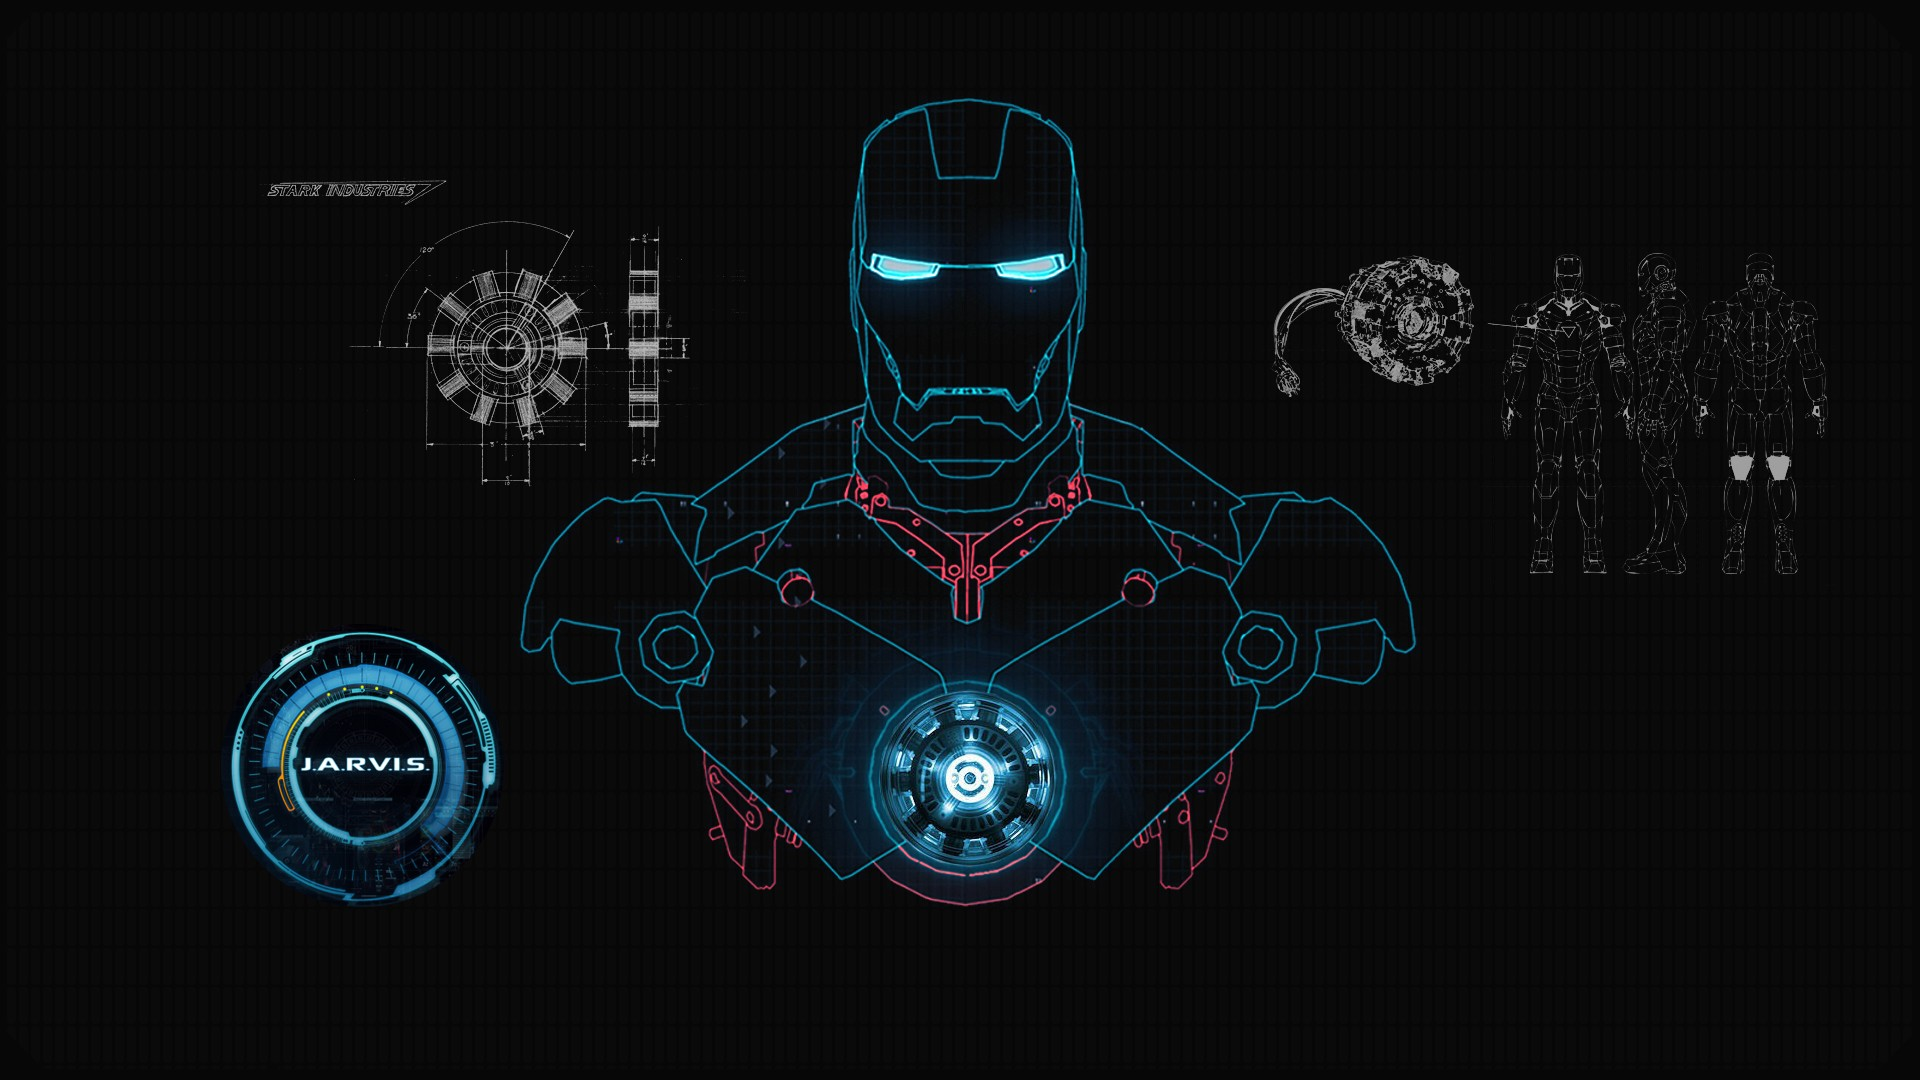 69 Iron Man Wallpapers For Download In HD 1920x1080